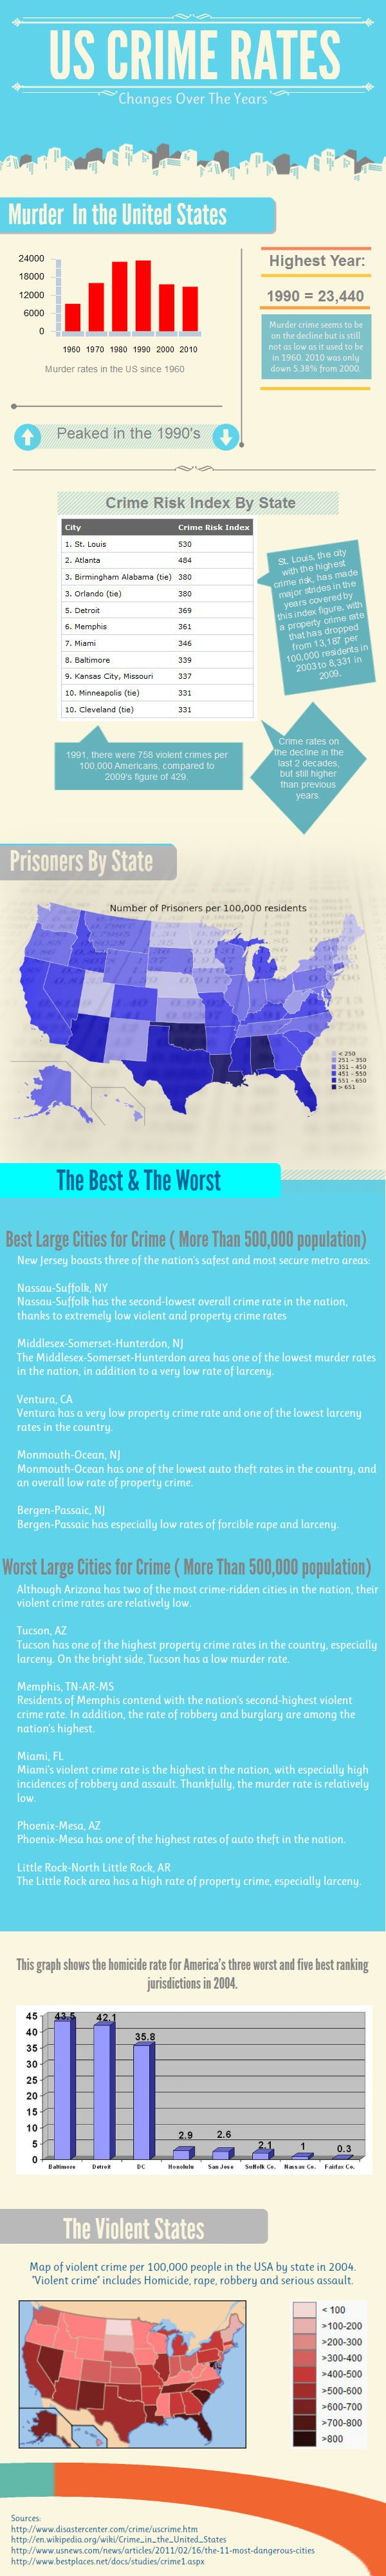 Best Us Crime Rate Ideas On Pinterest Crime Rates By City - Us crime rate map usa